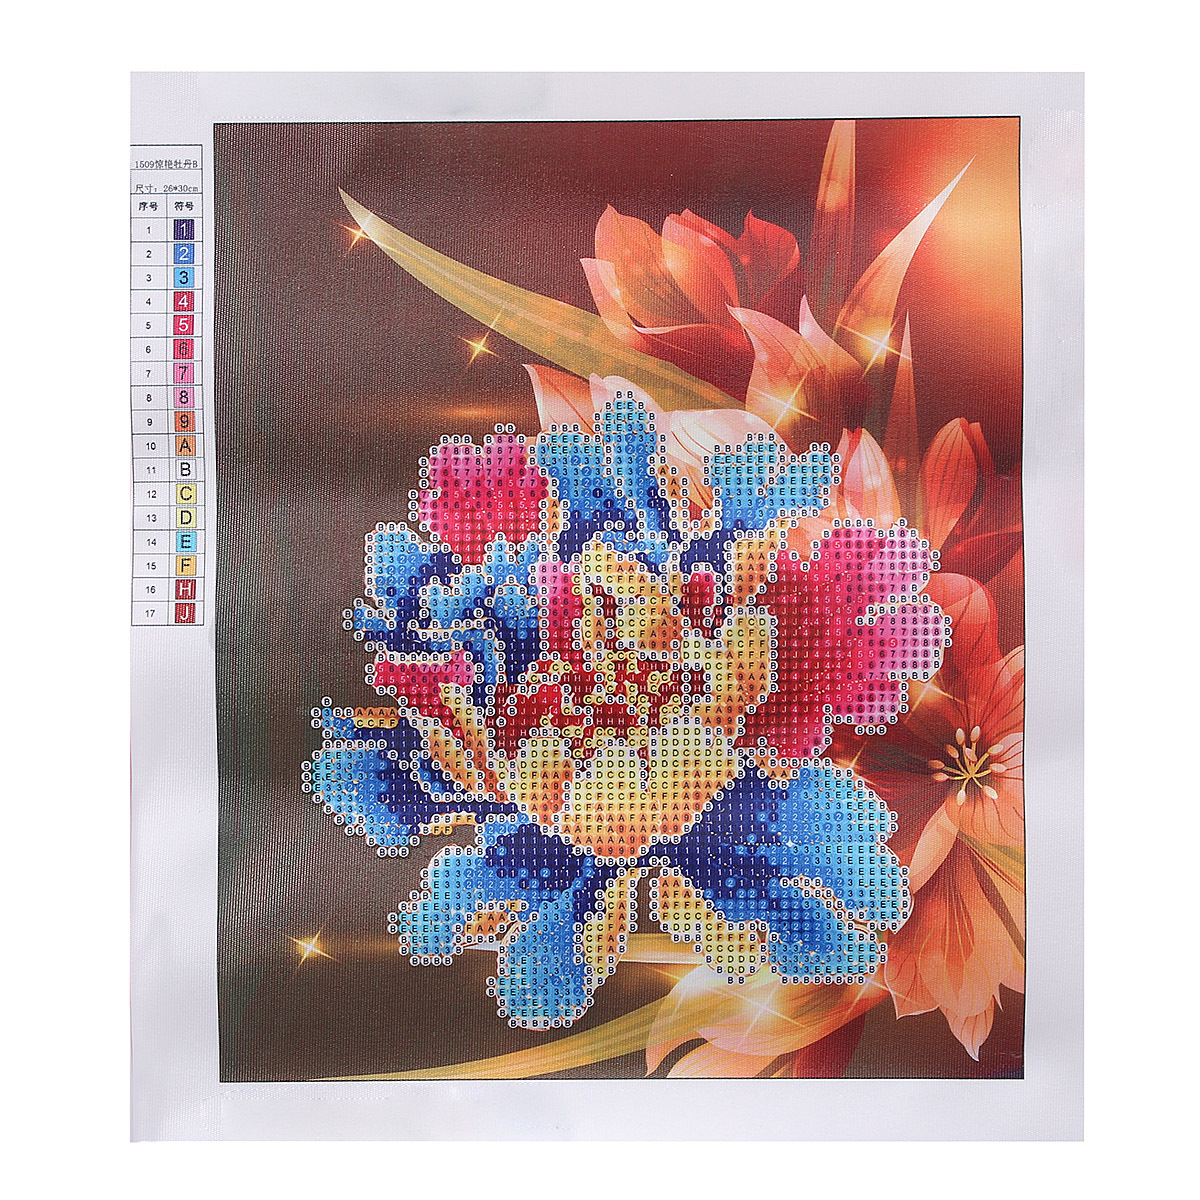 Diy d diamond painting embroidery flower cross crafts